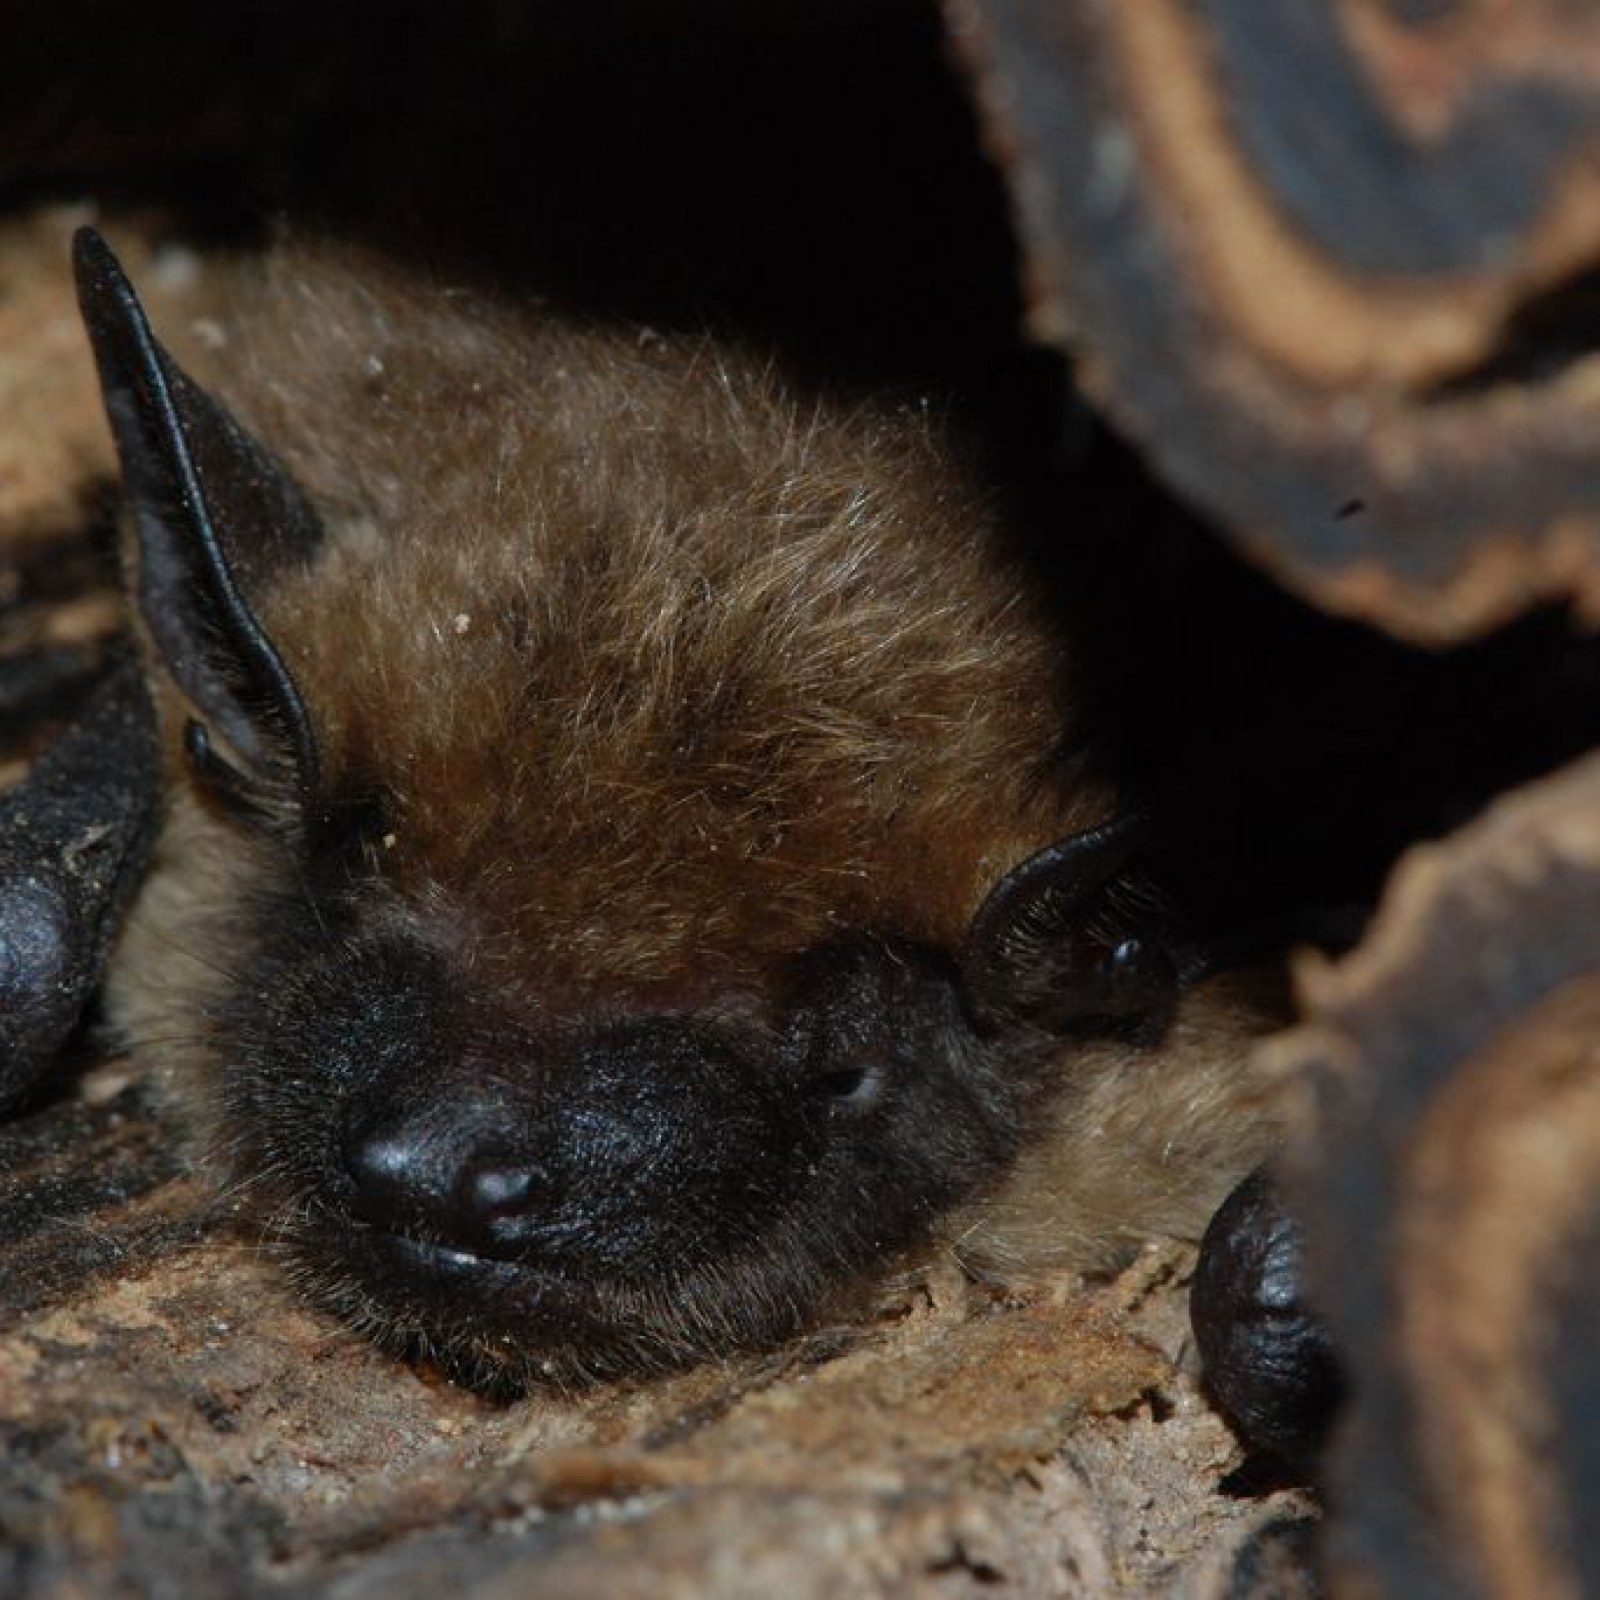 When You Should Be Worried About Getting Rabies From a Bat